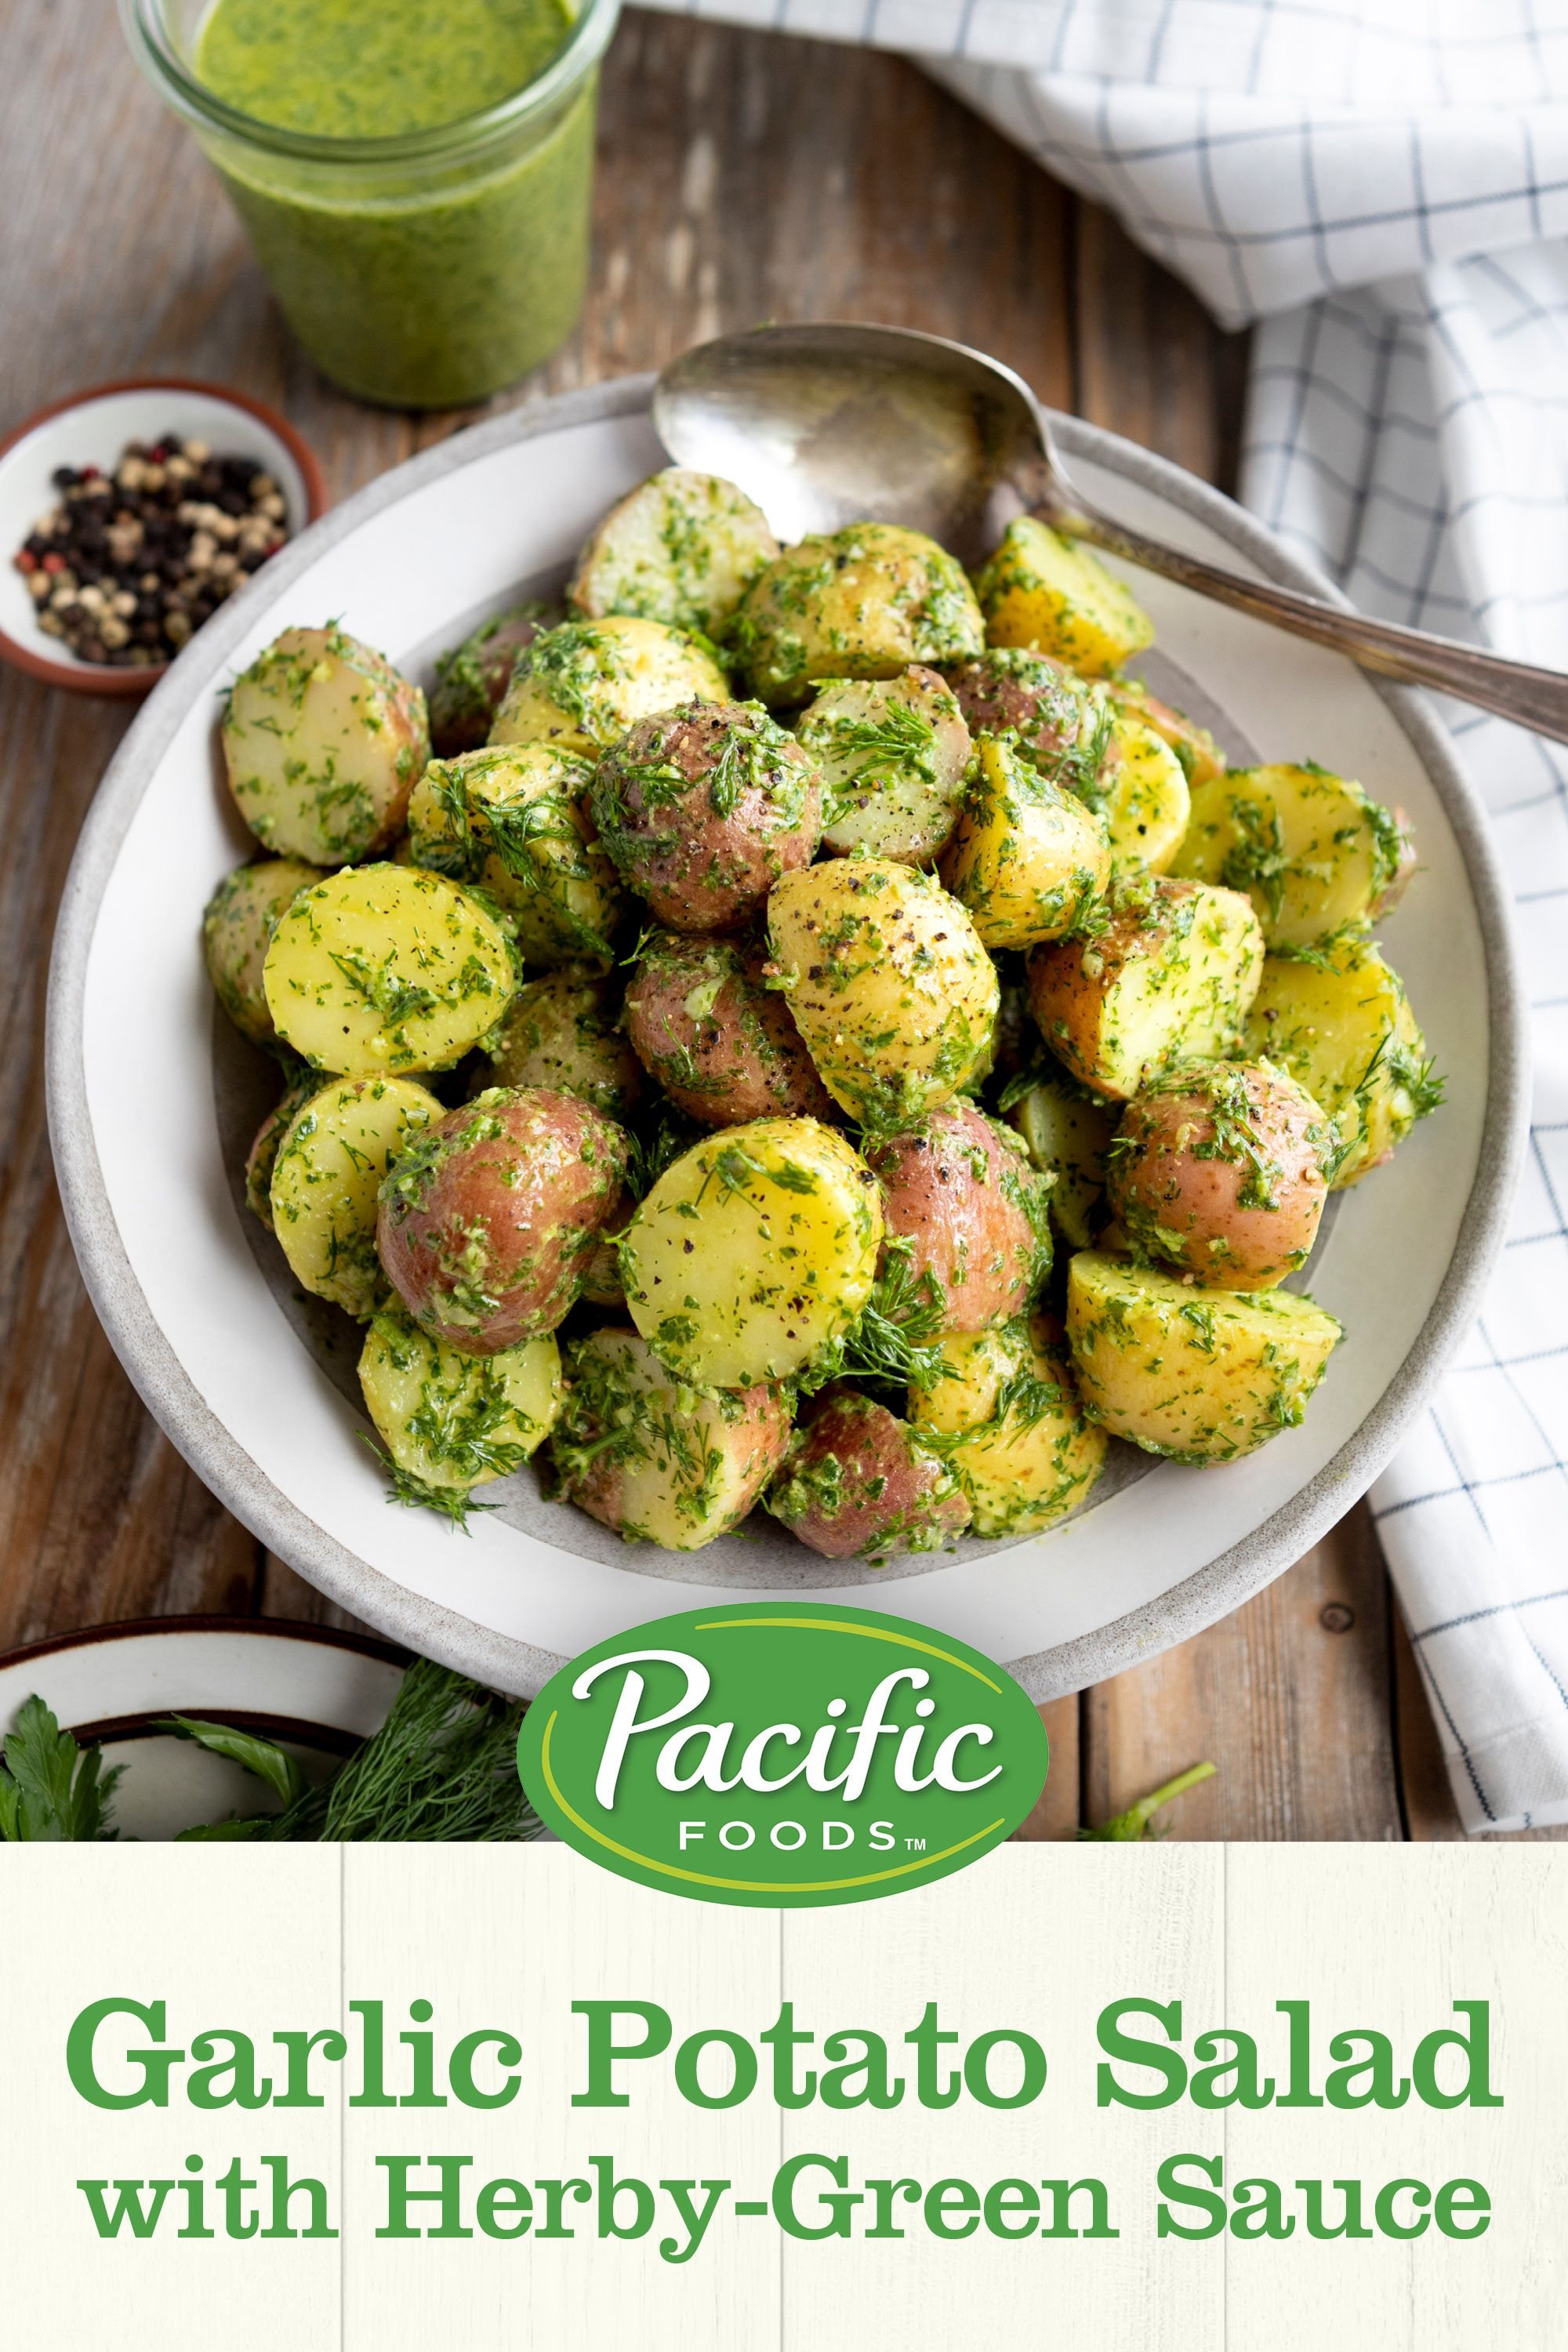 Garlic Potato Salad with Herby-Green Sauce Recipe | Pacific Foods